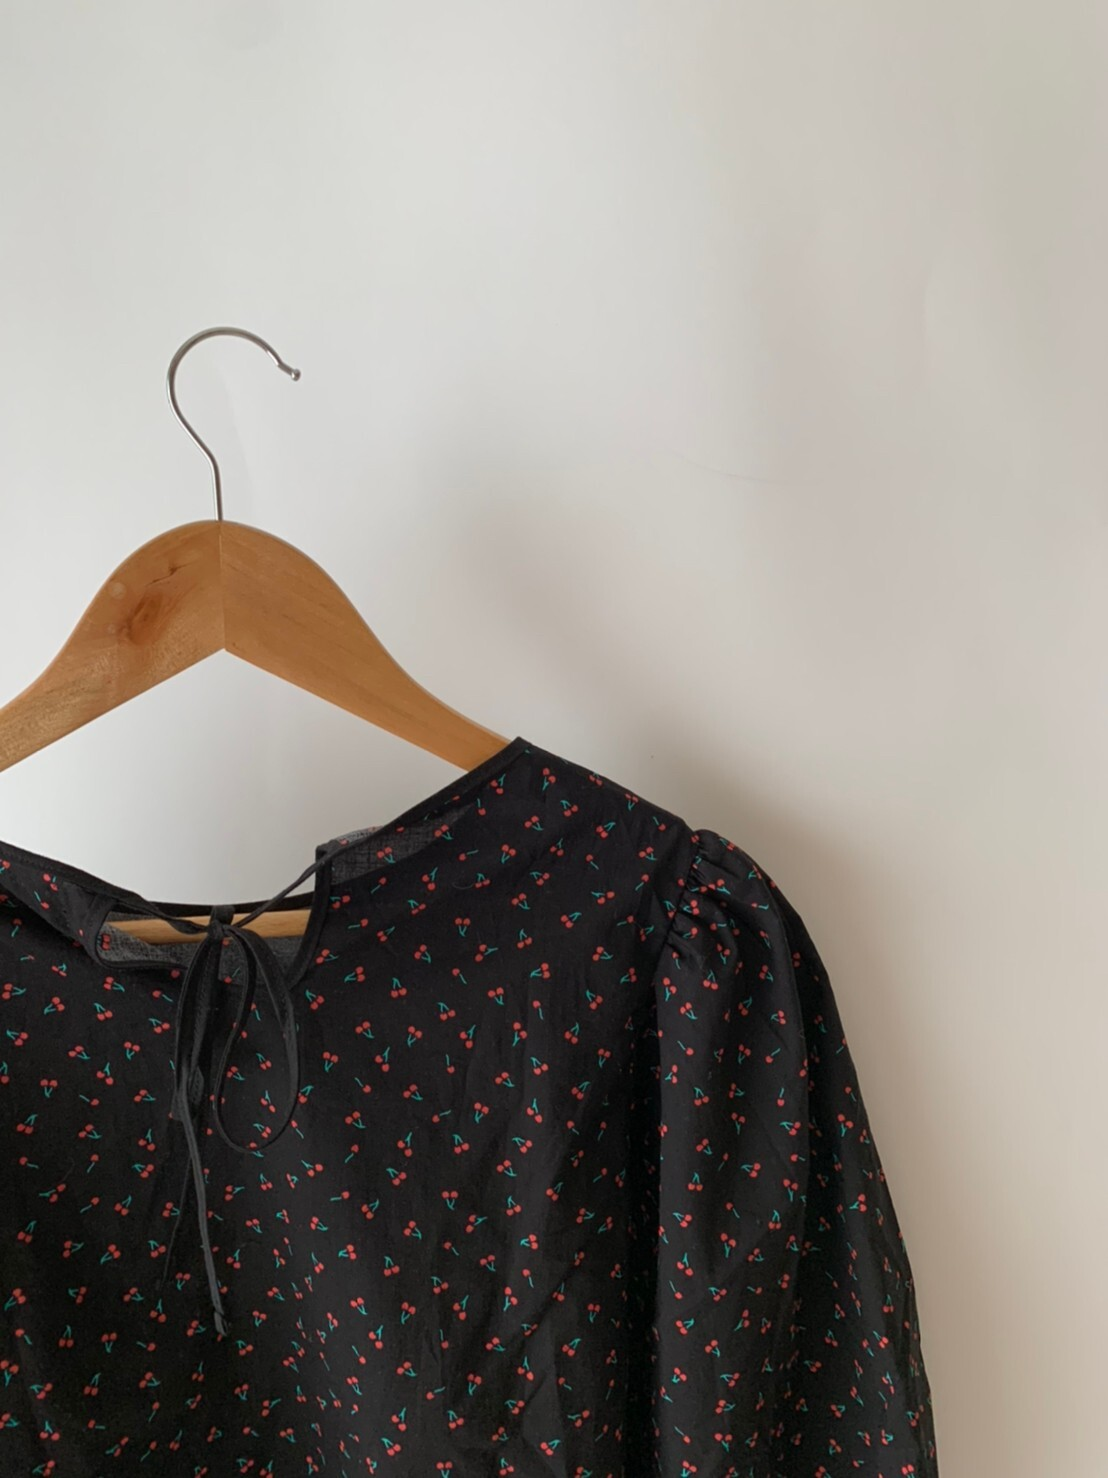 【asyu】otona cherry blouse